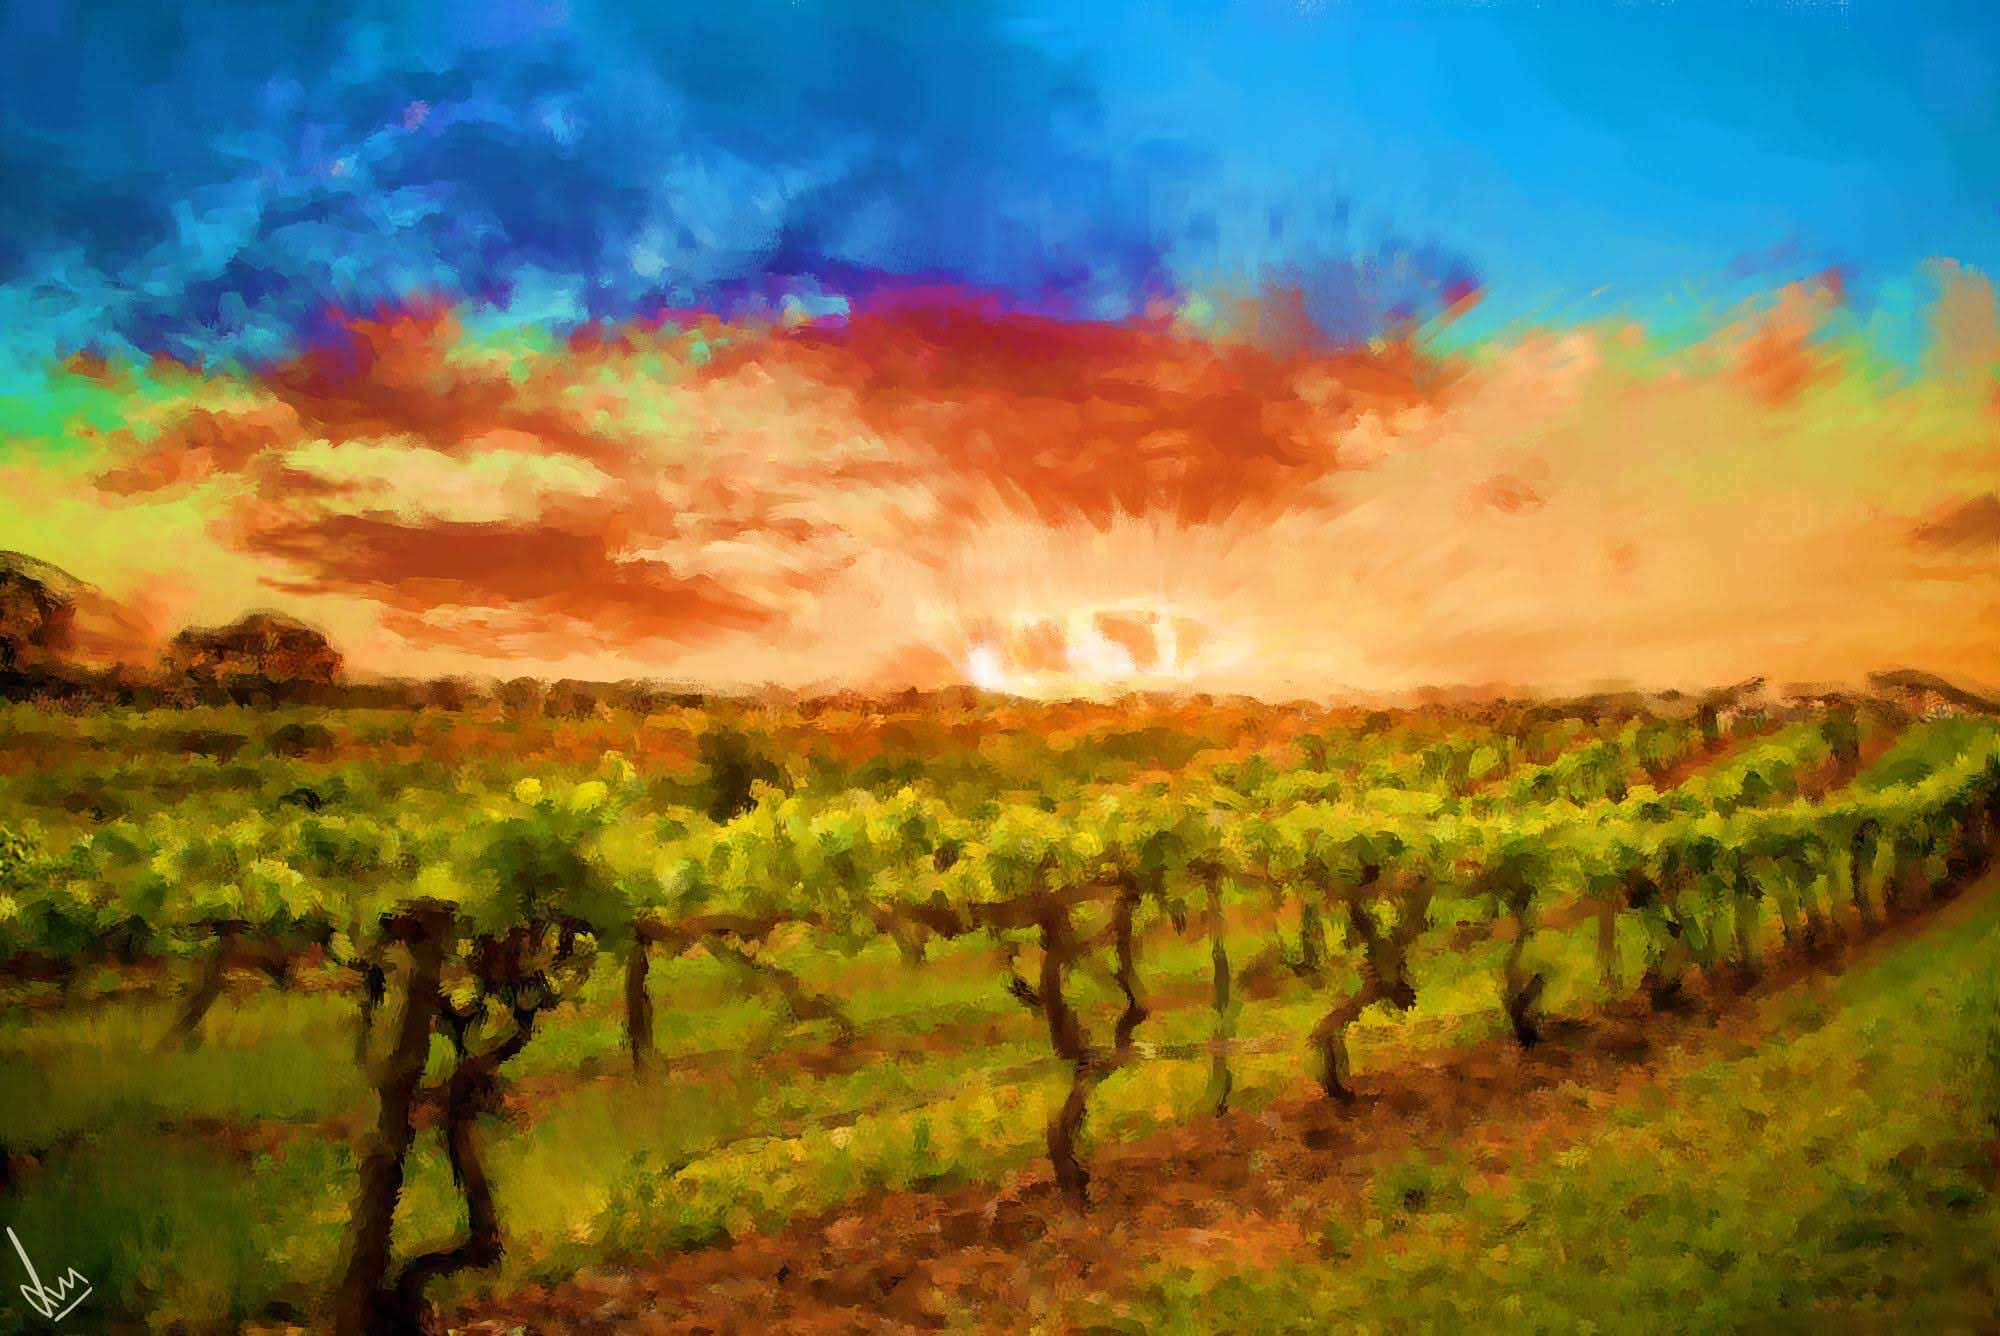 Vineyards of Barossa Valley, South Australia - Digital Painting by Shaalyn Monteiro